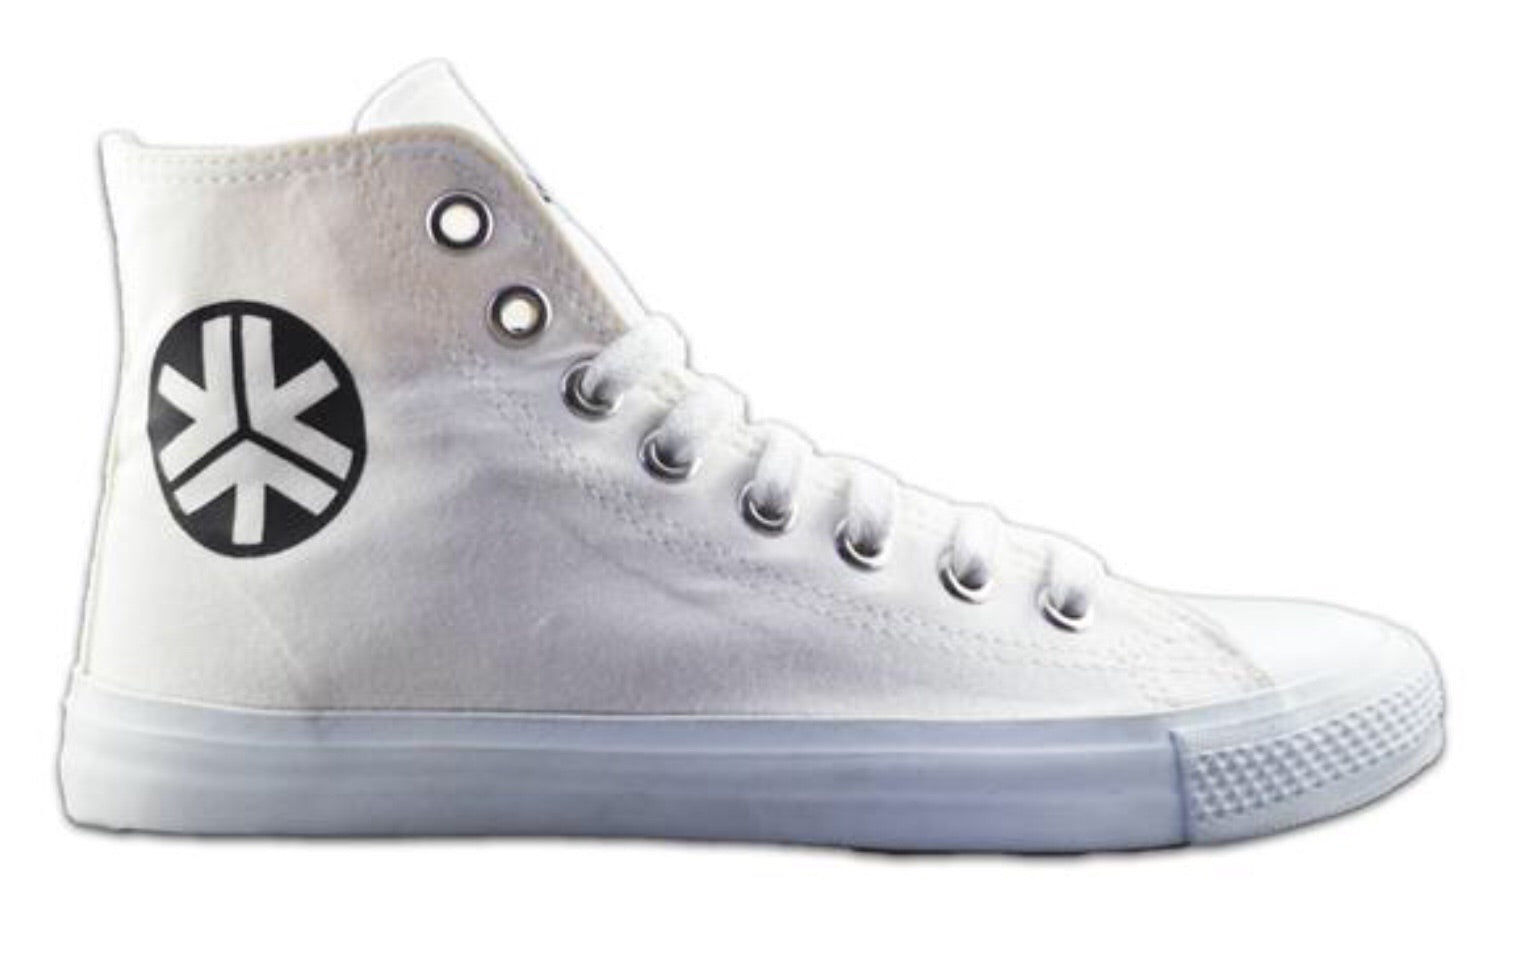 Etiko Fairtrade Hi Top All White Sneakers